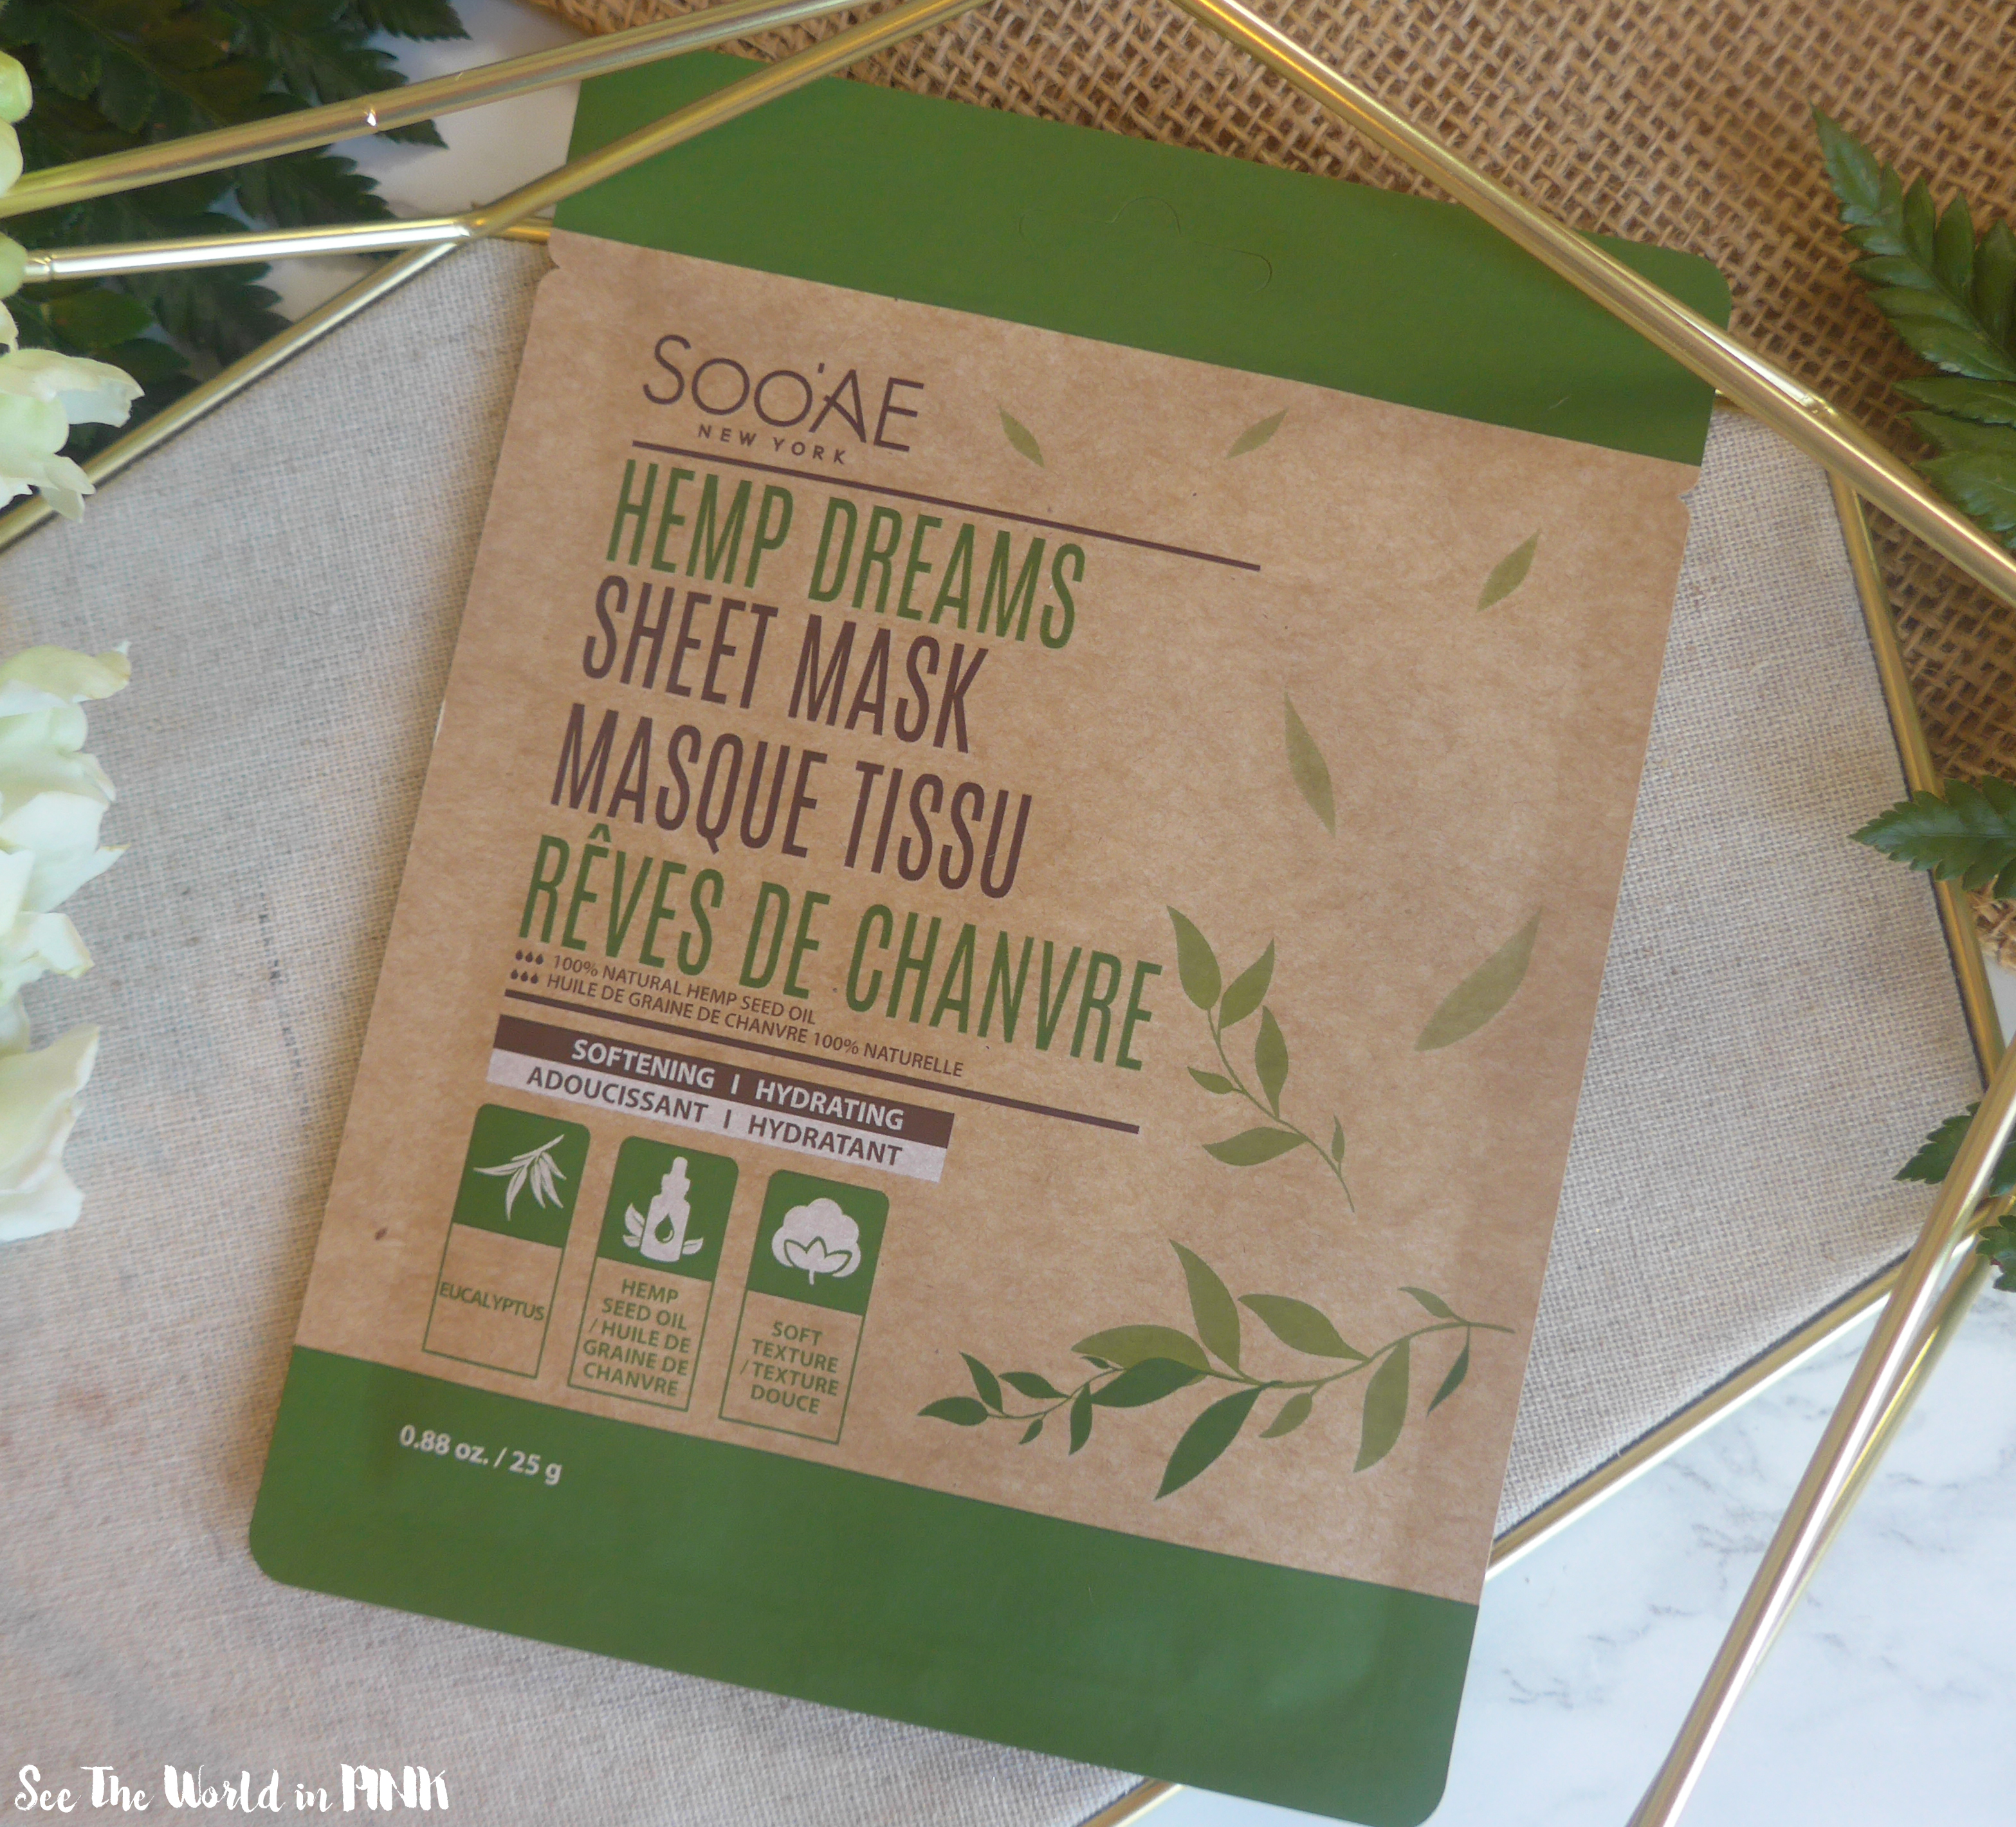 SooAE Hemp Dreams Sheet Mask & Mud Mask